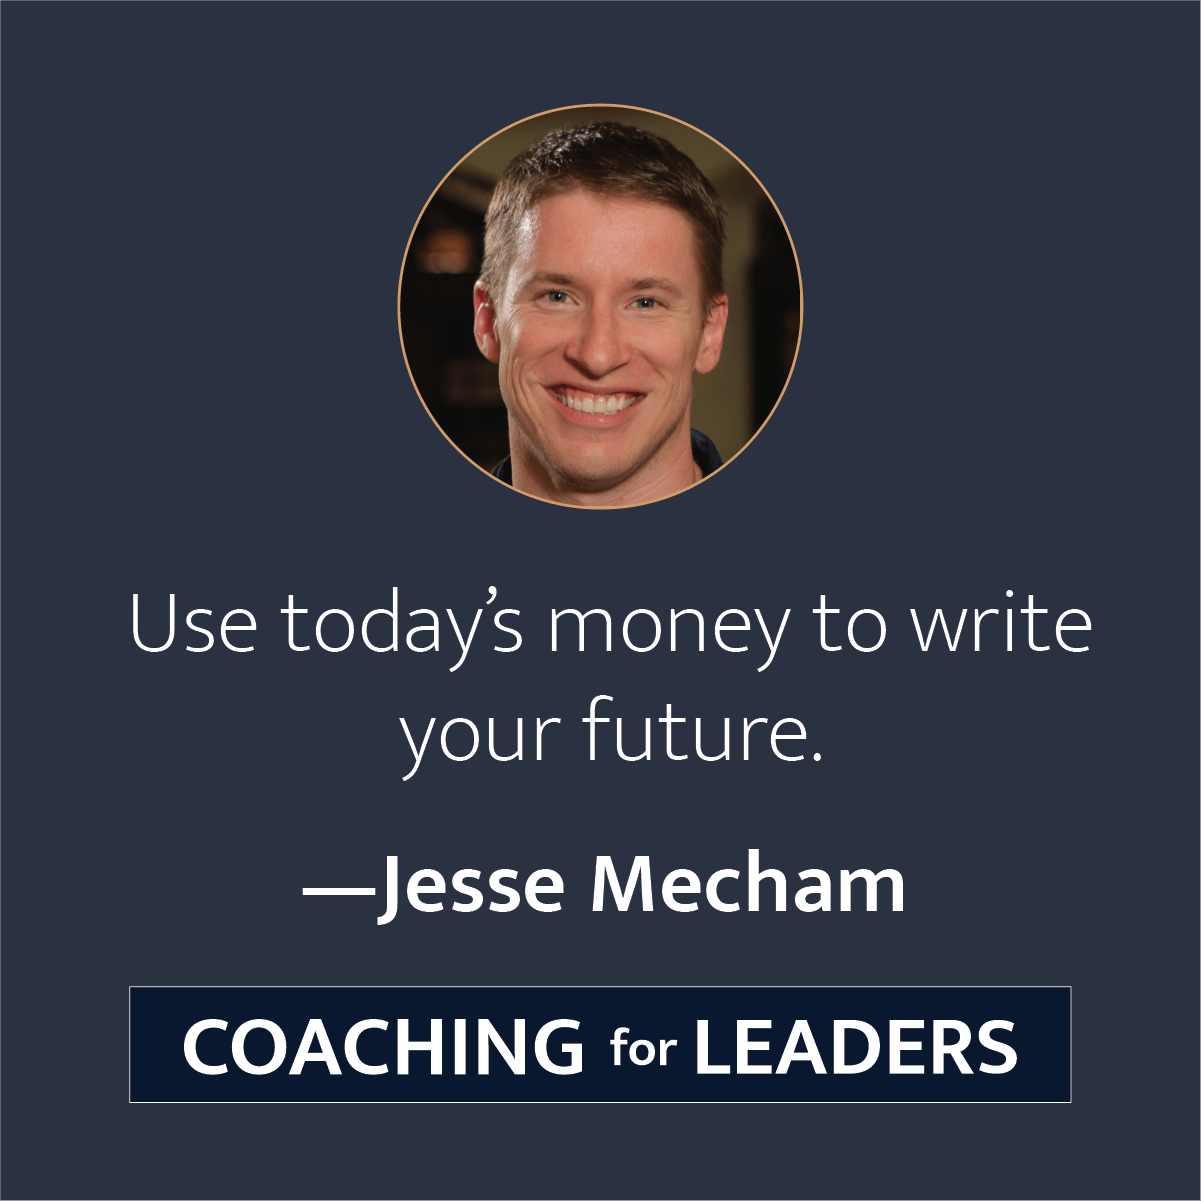 Use today's money to write your future.